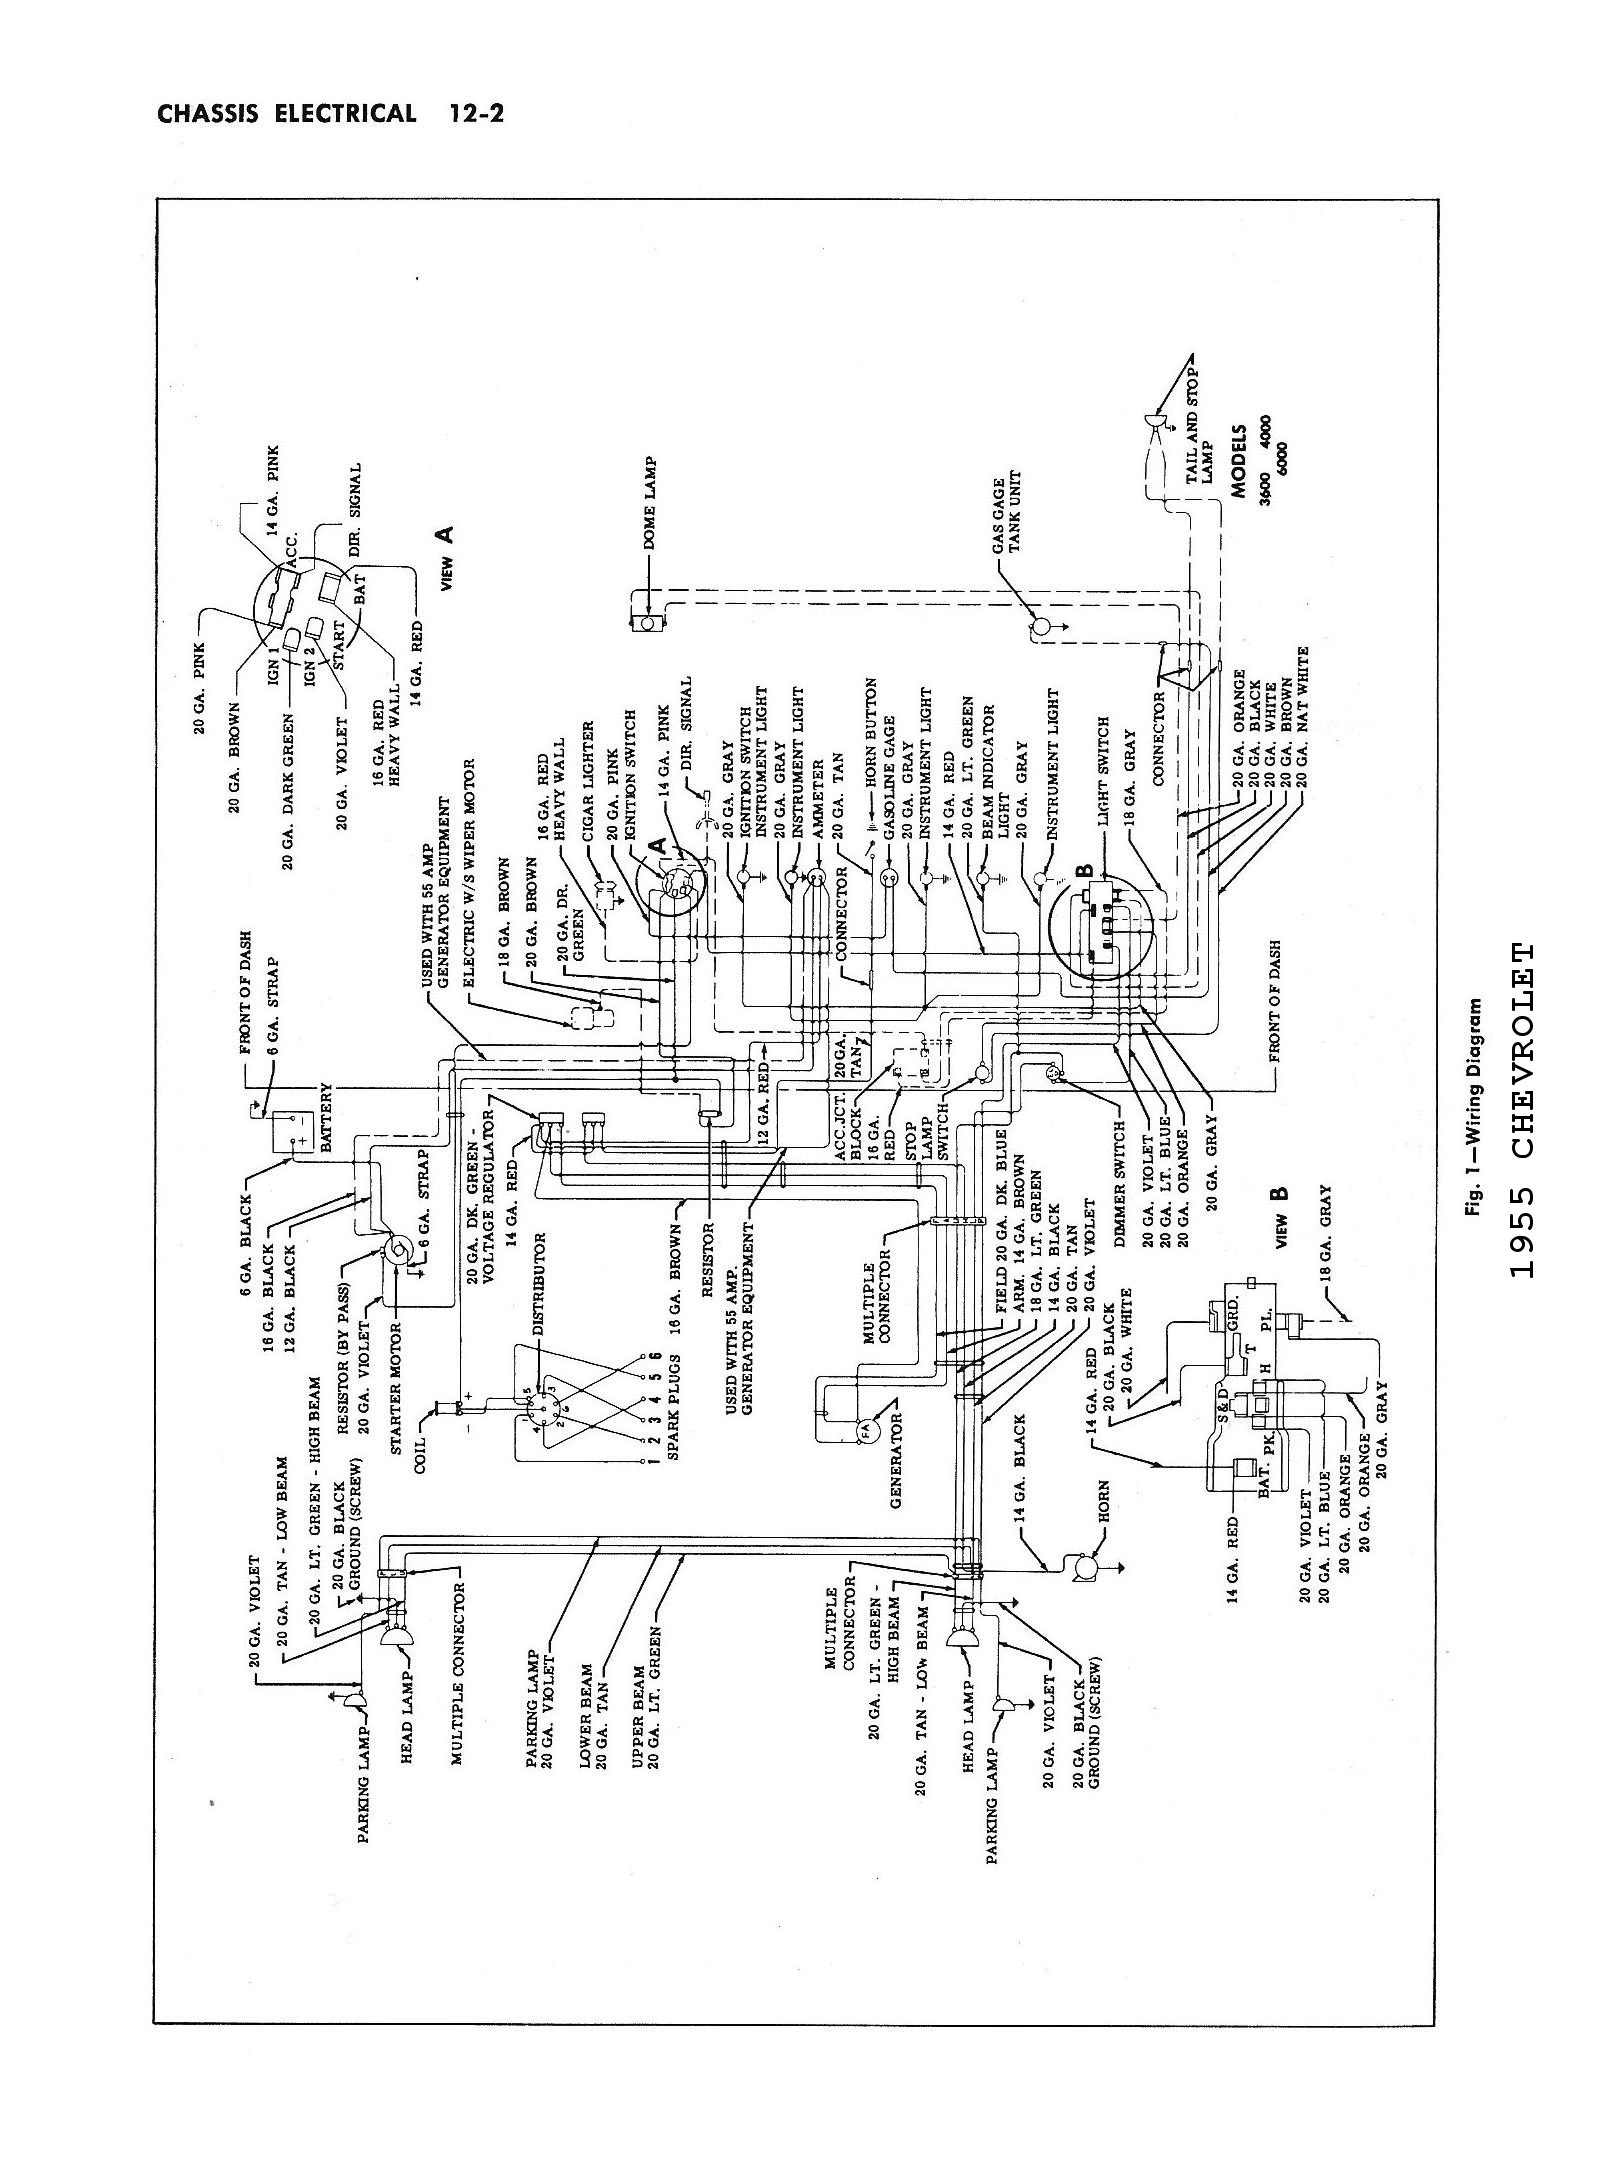 Chevy Wiring Diagrams Trucks Schematics 91 Mustang Starter Diagram Free Picture 1991 1500 1955 Car